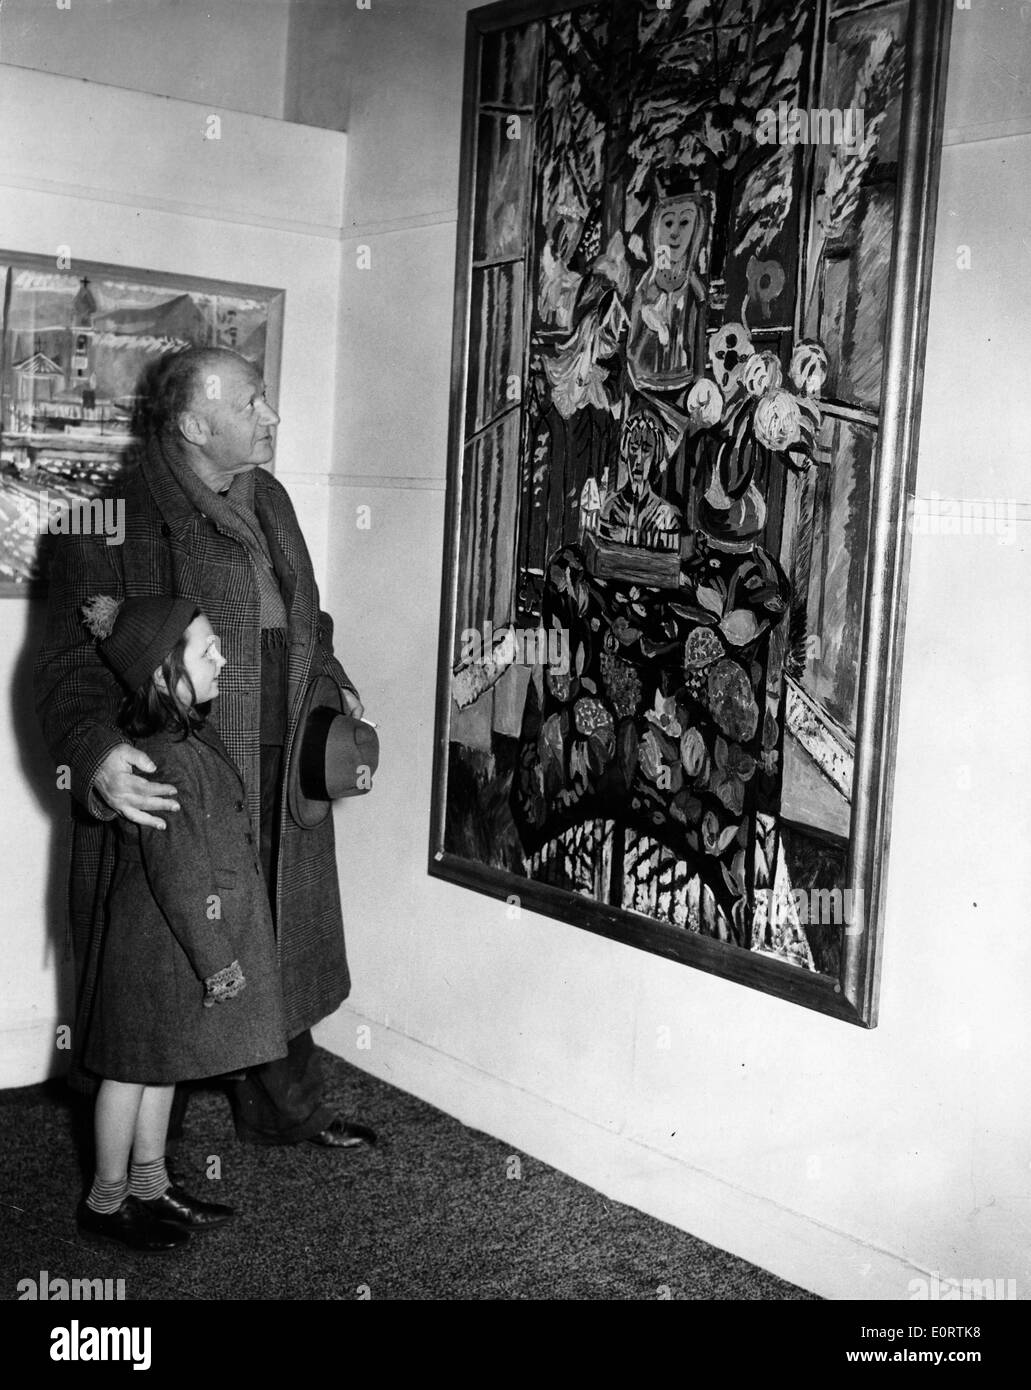 Jacob Epstein in an art gallery with young girl - Stock Image